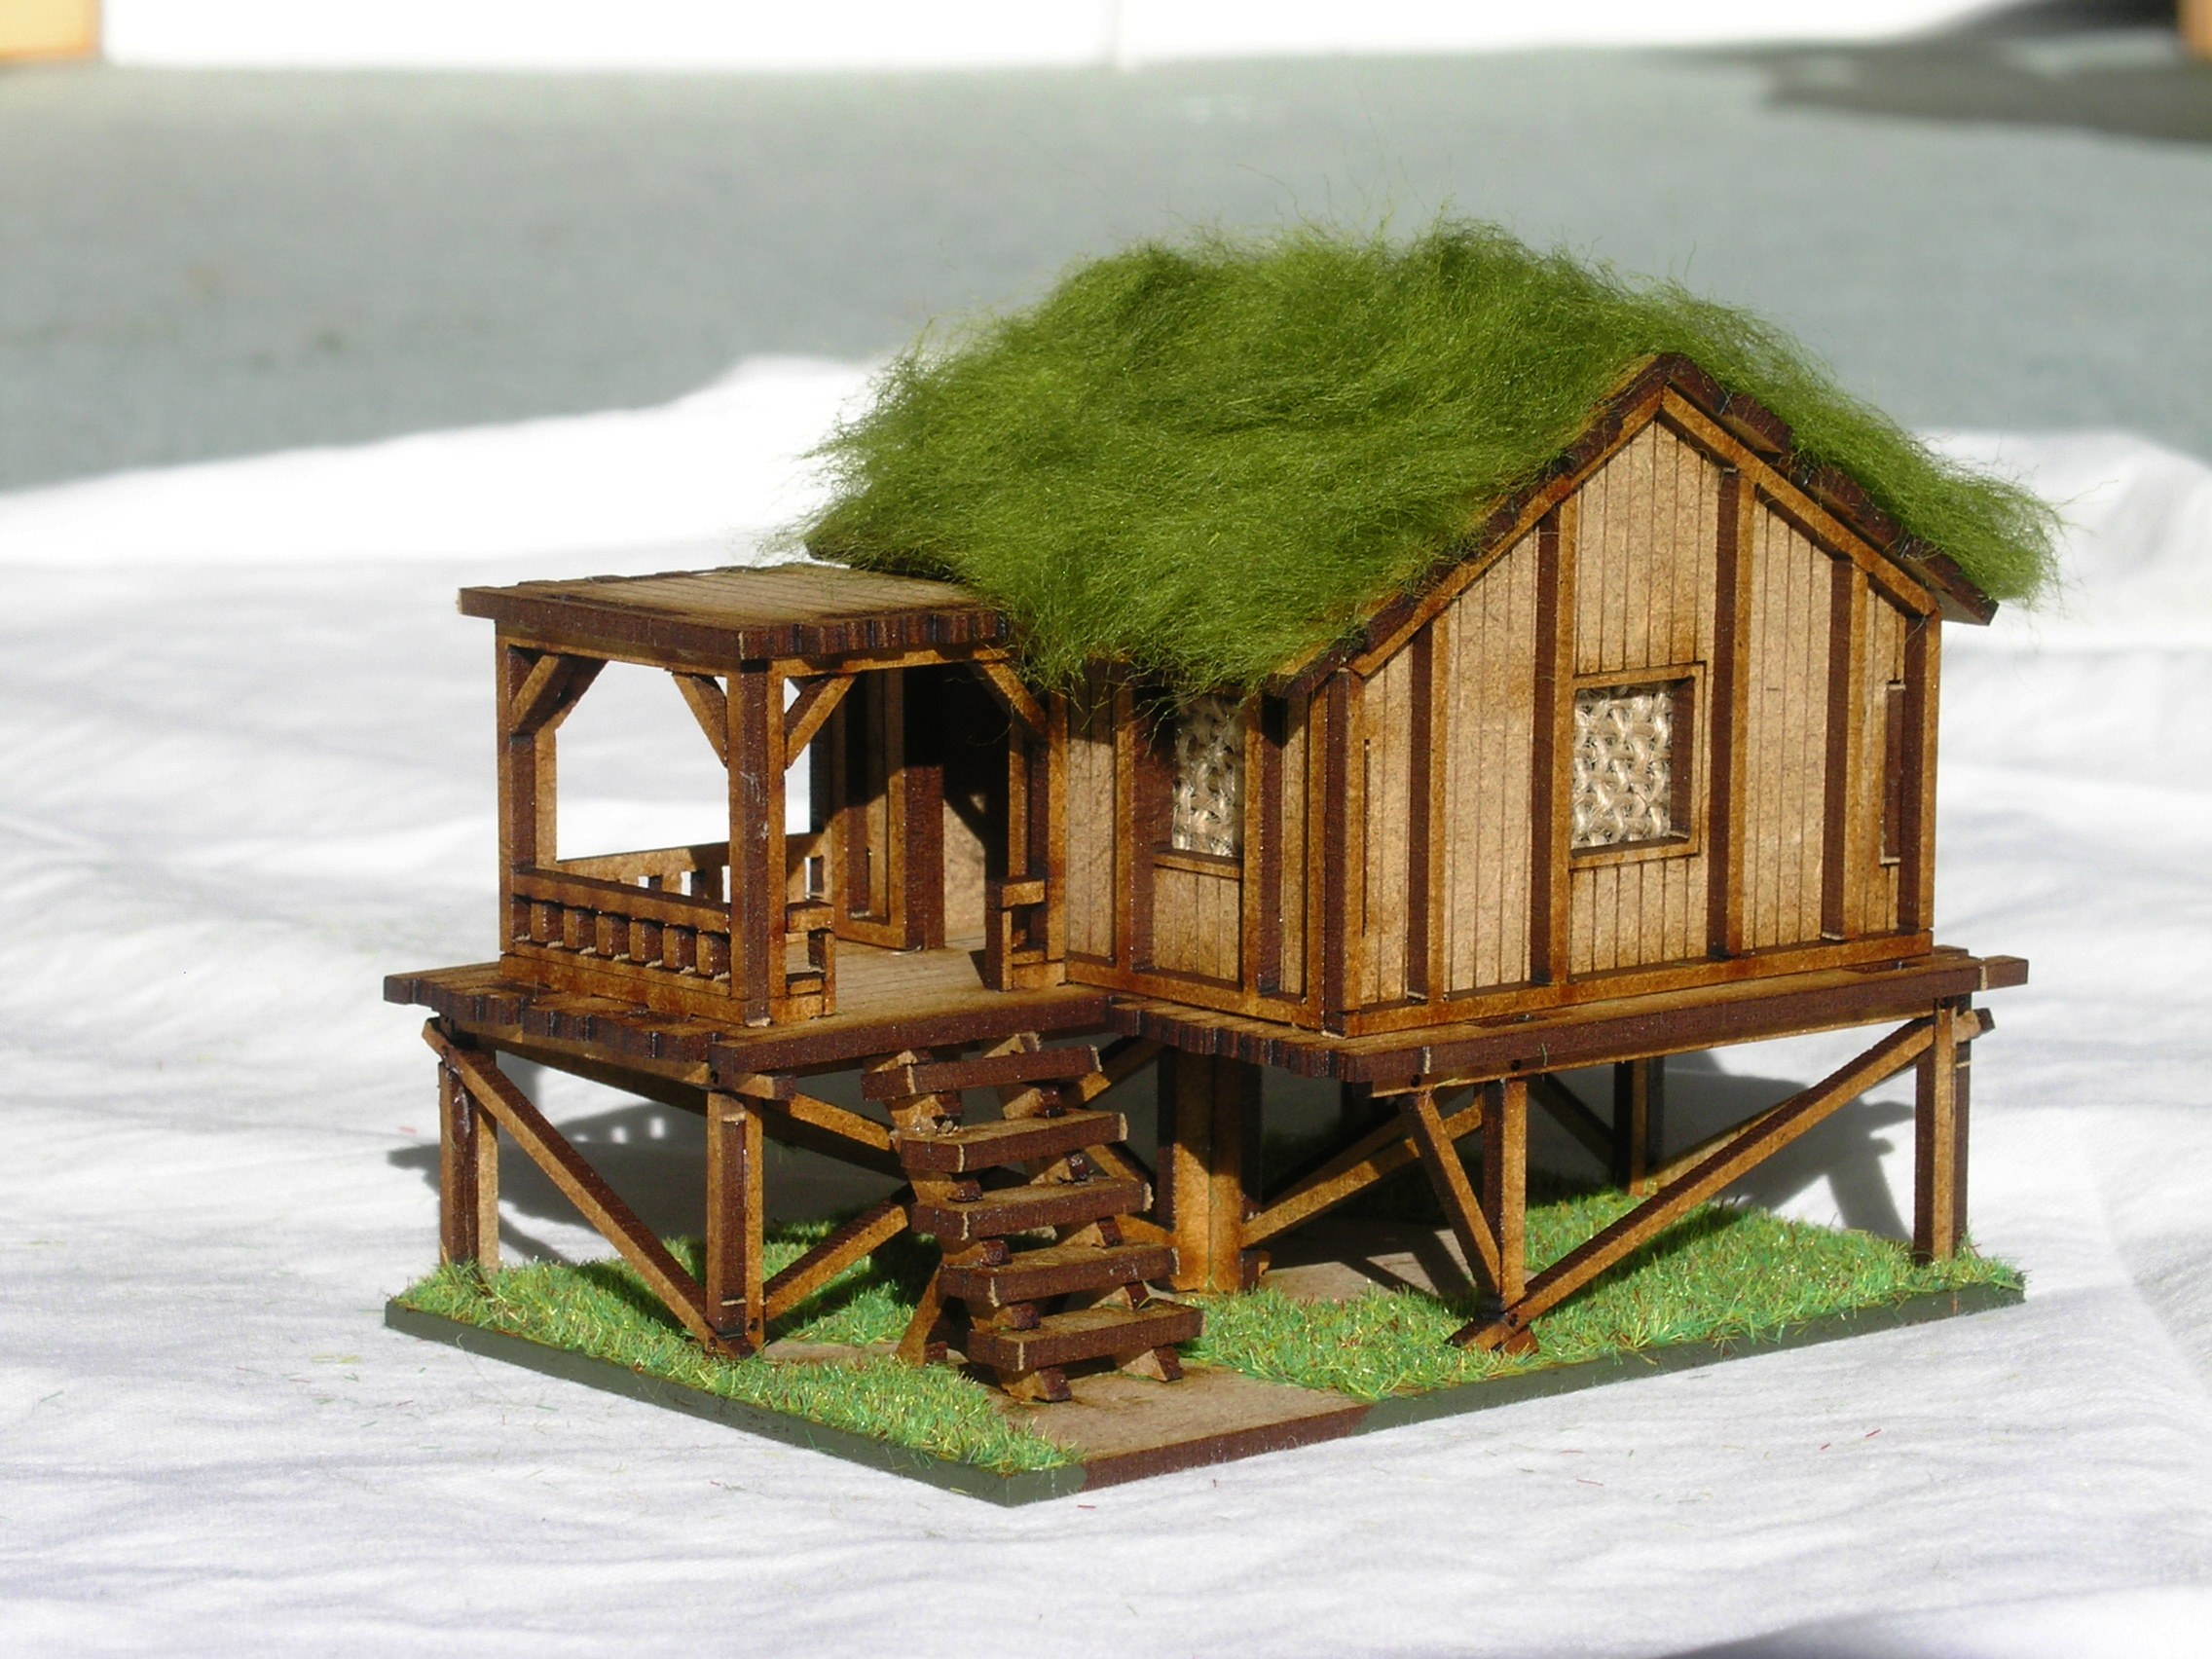 Building Five: Planked Style Village House